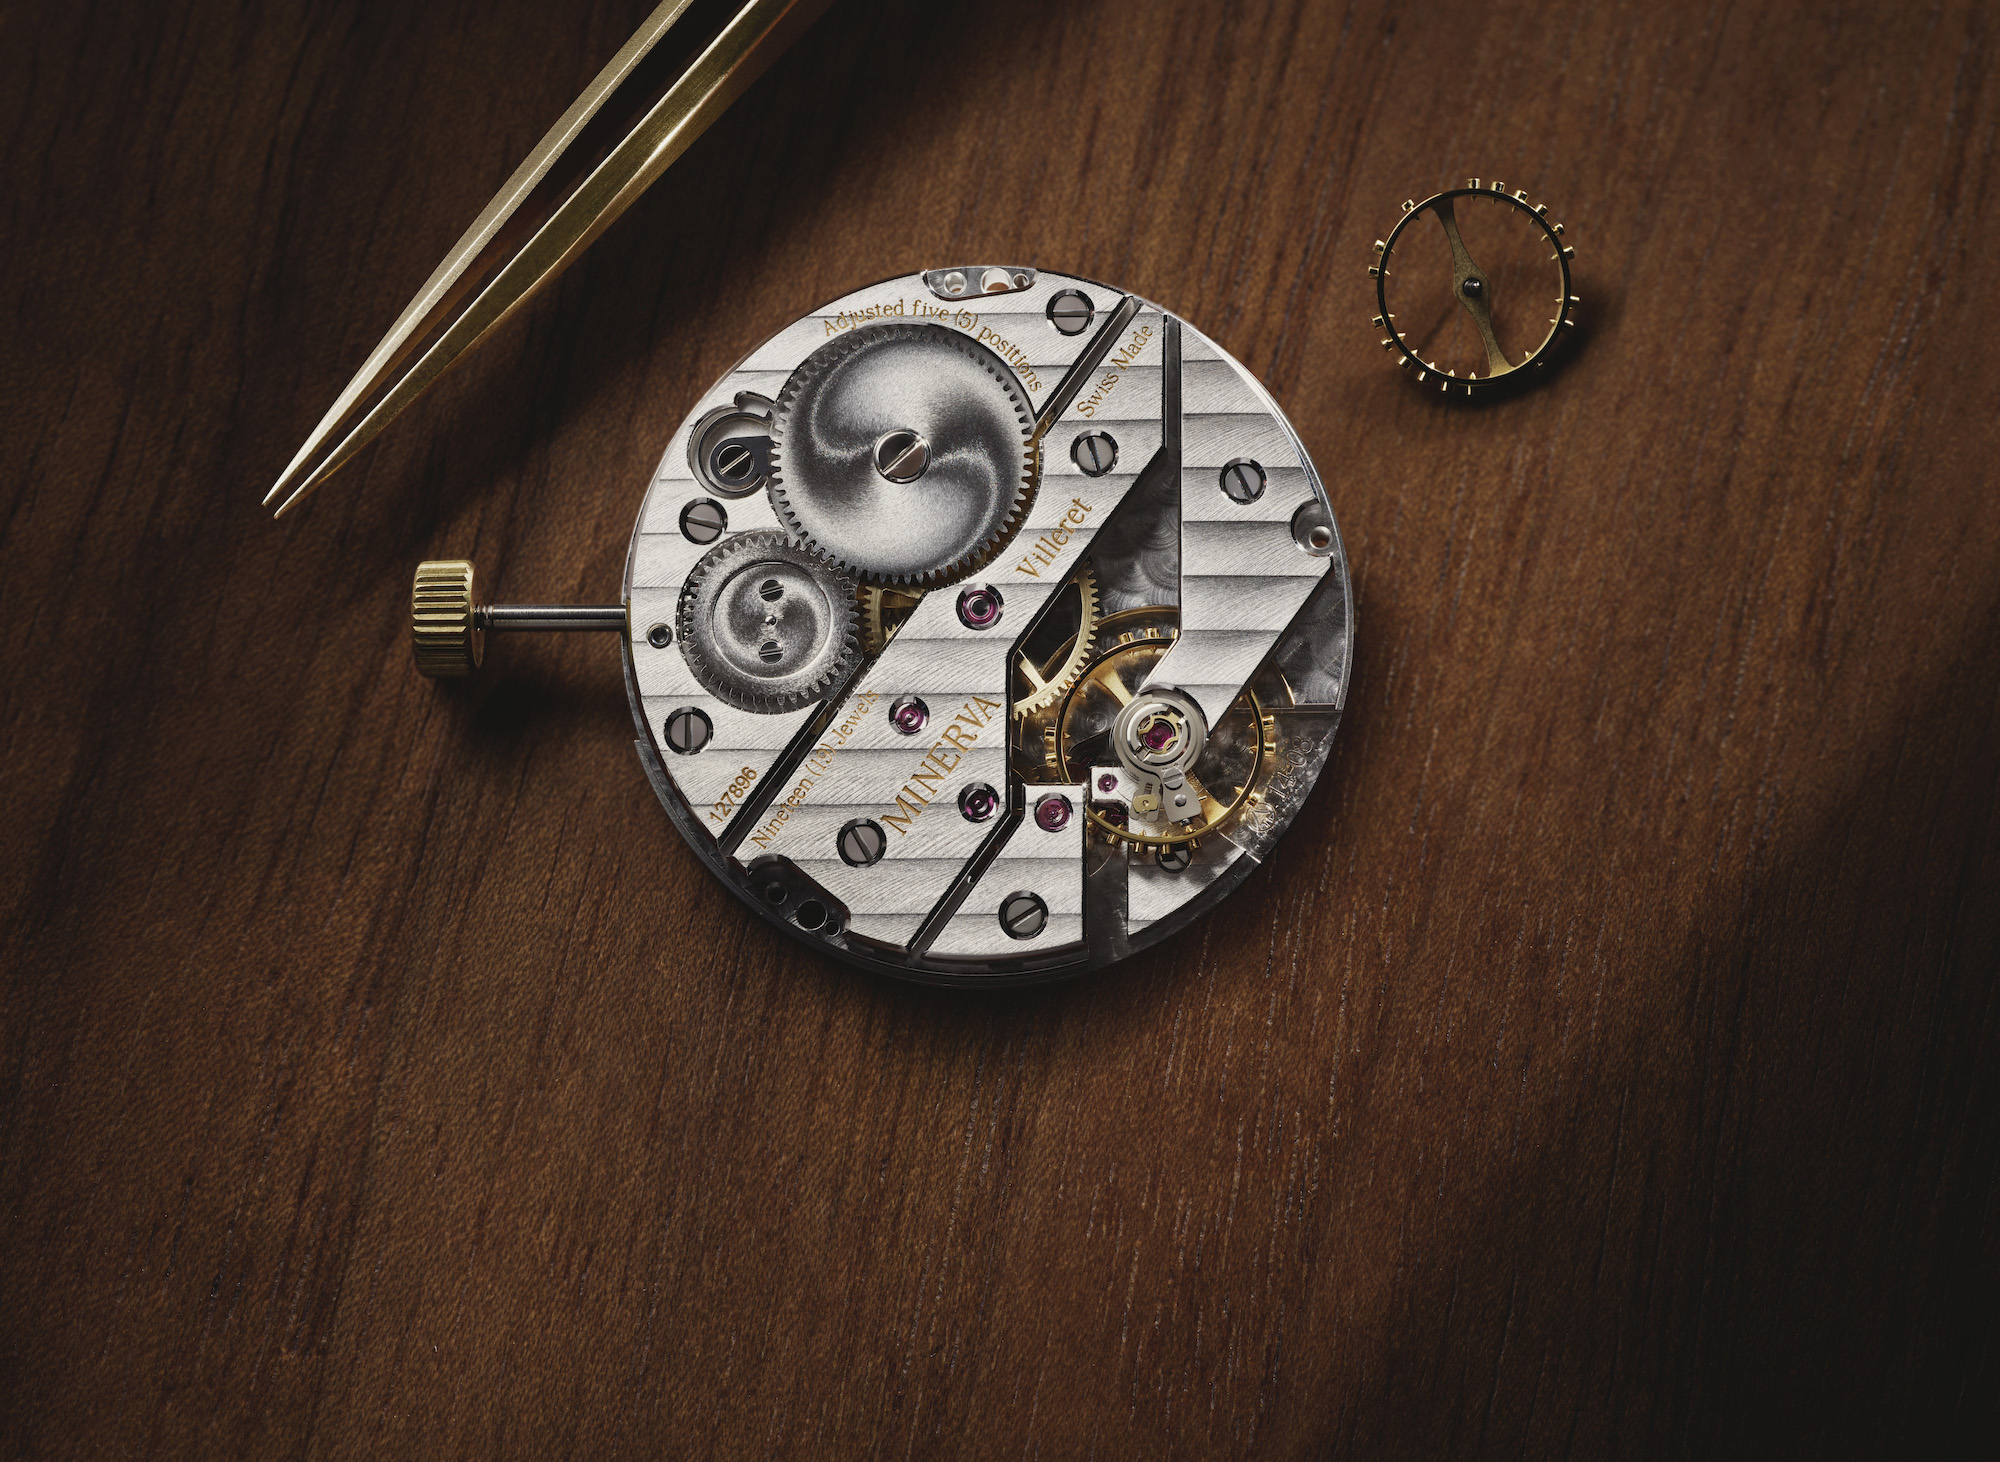 Montblanc Heritage Pythagore Small Second Limited Edition 148 Detalle calibre